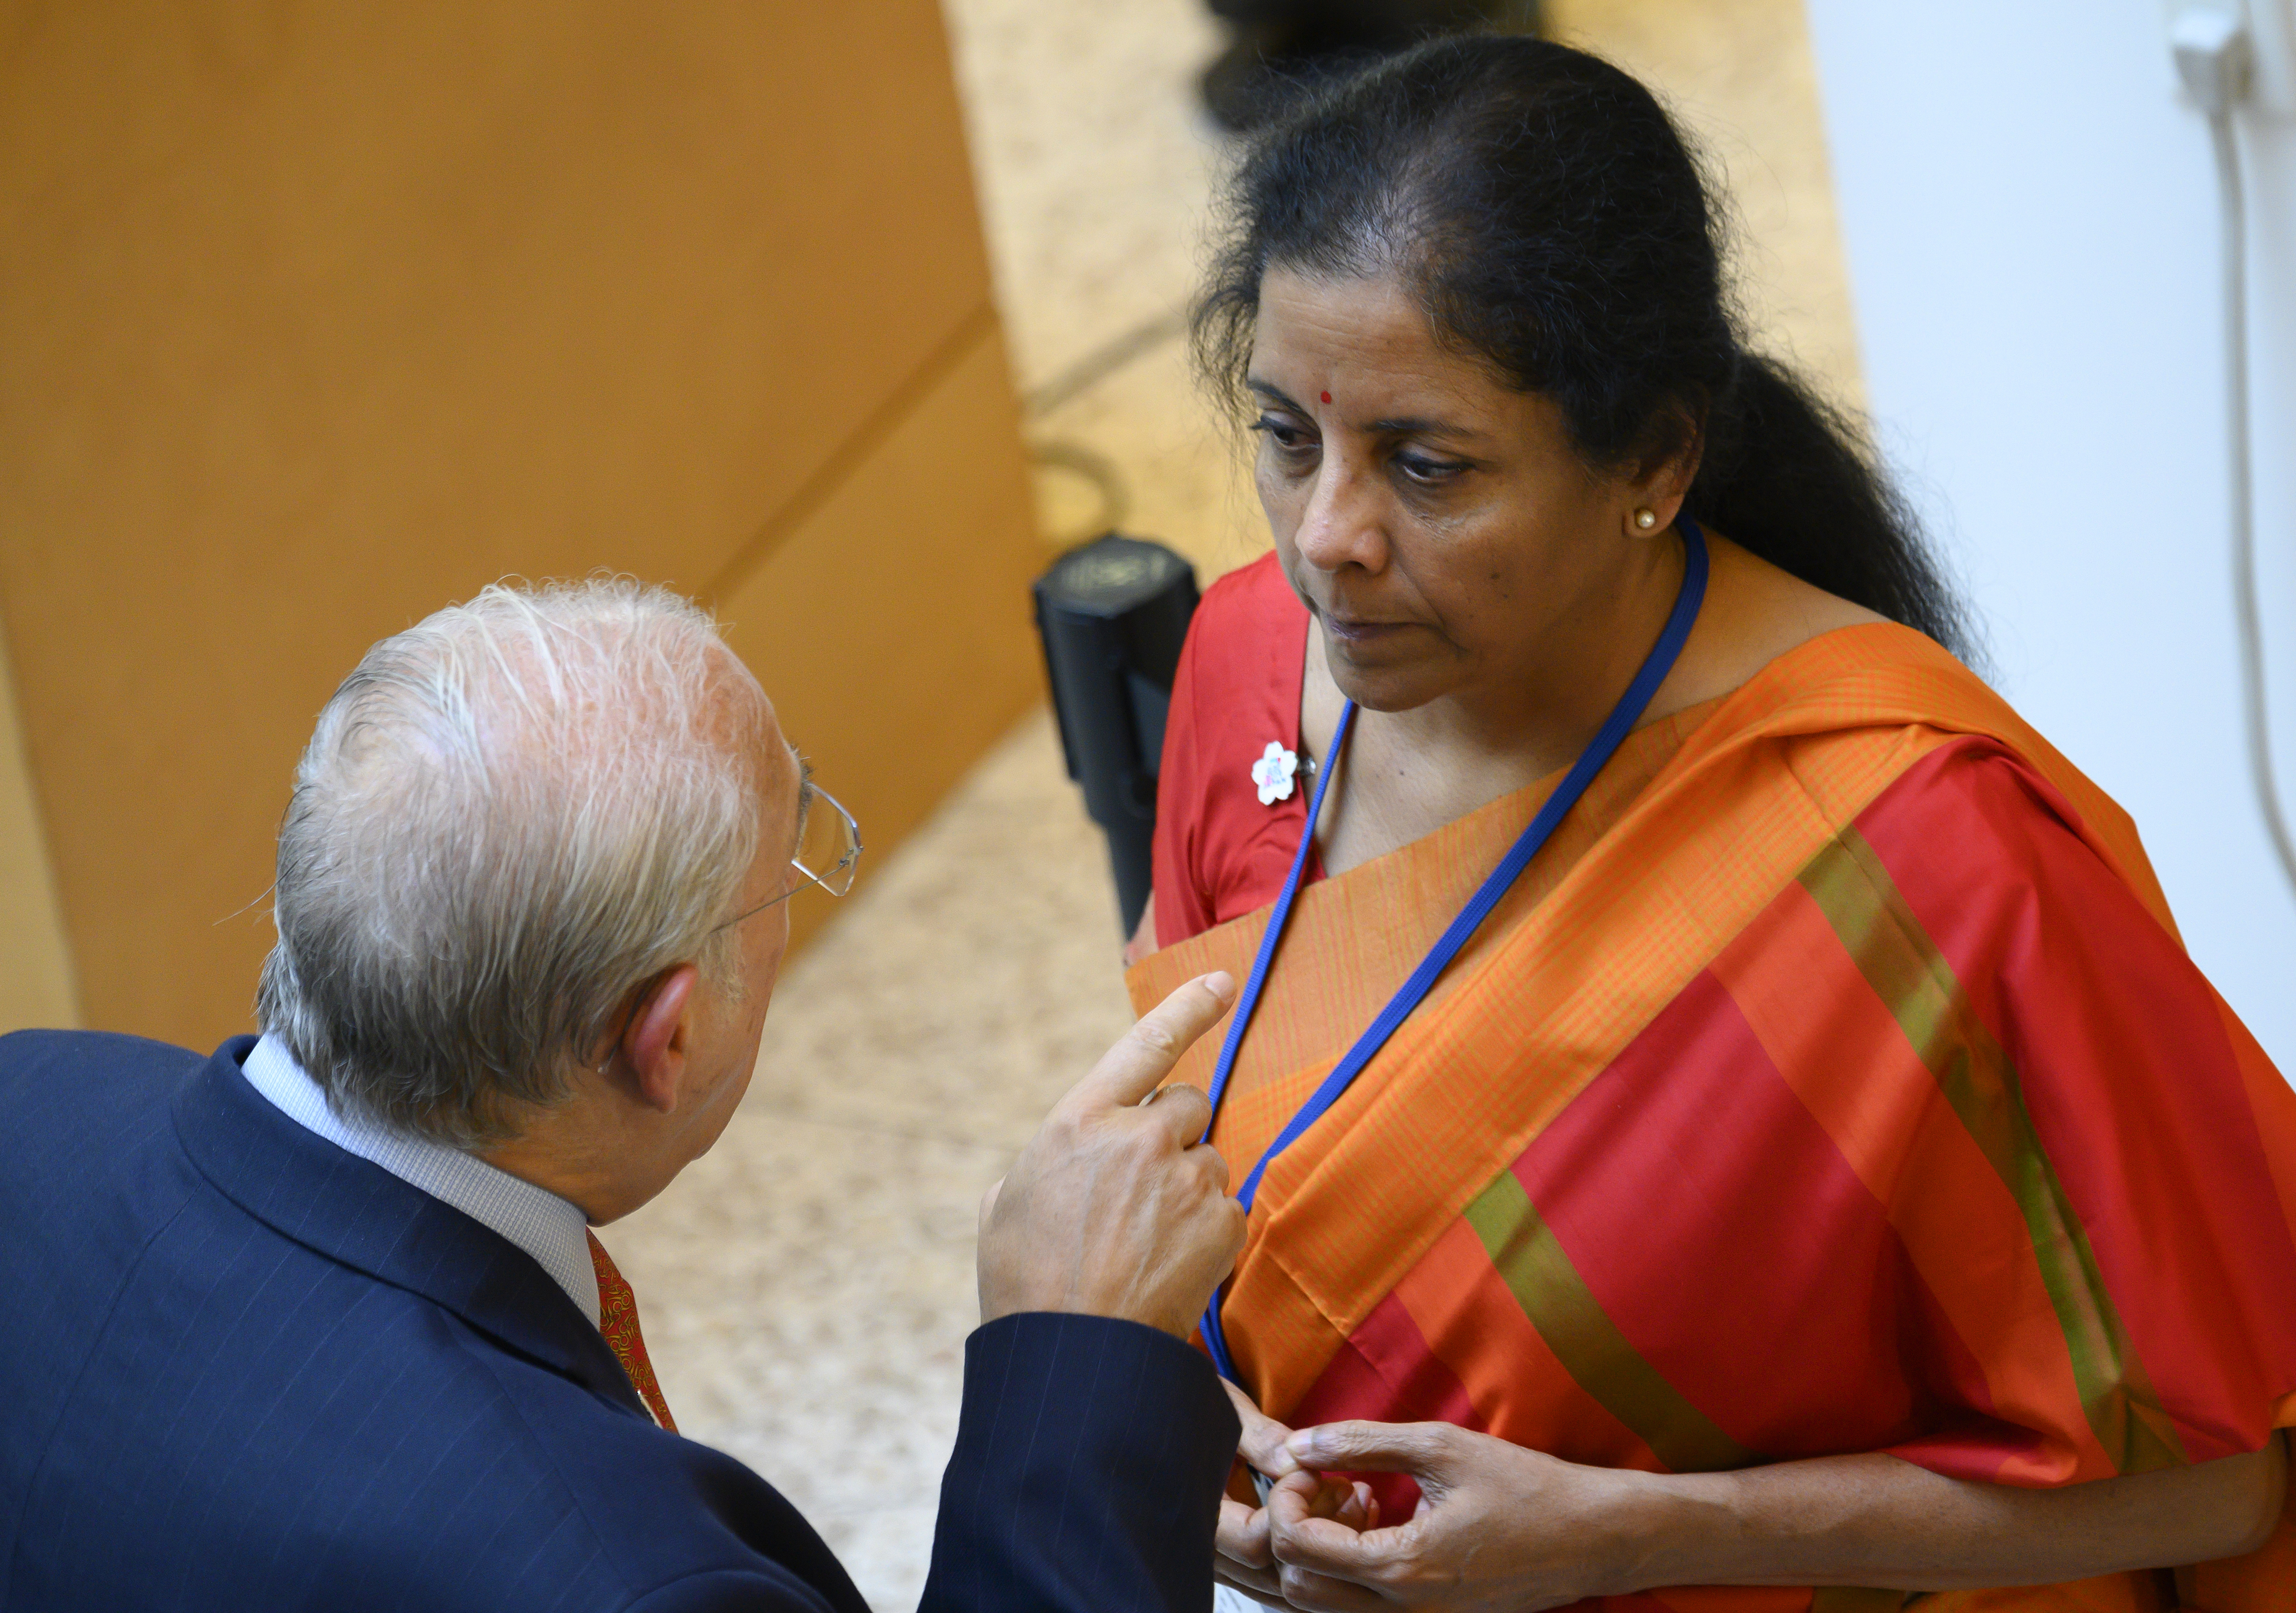 Lack of quota increase from International Monetary Fund disappointing: Nirmala Sitharaman